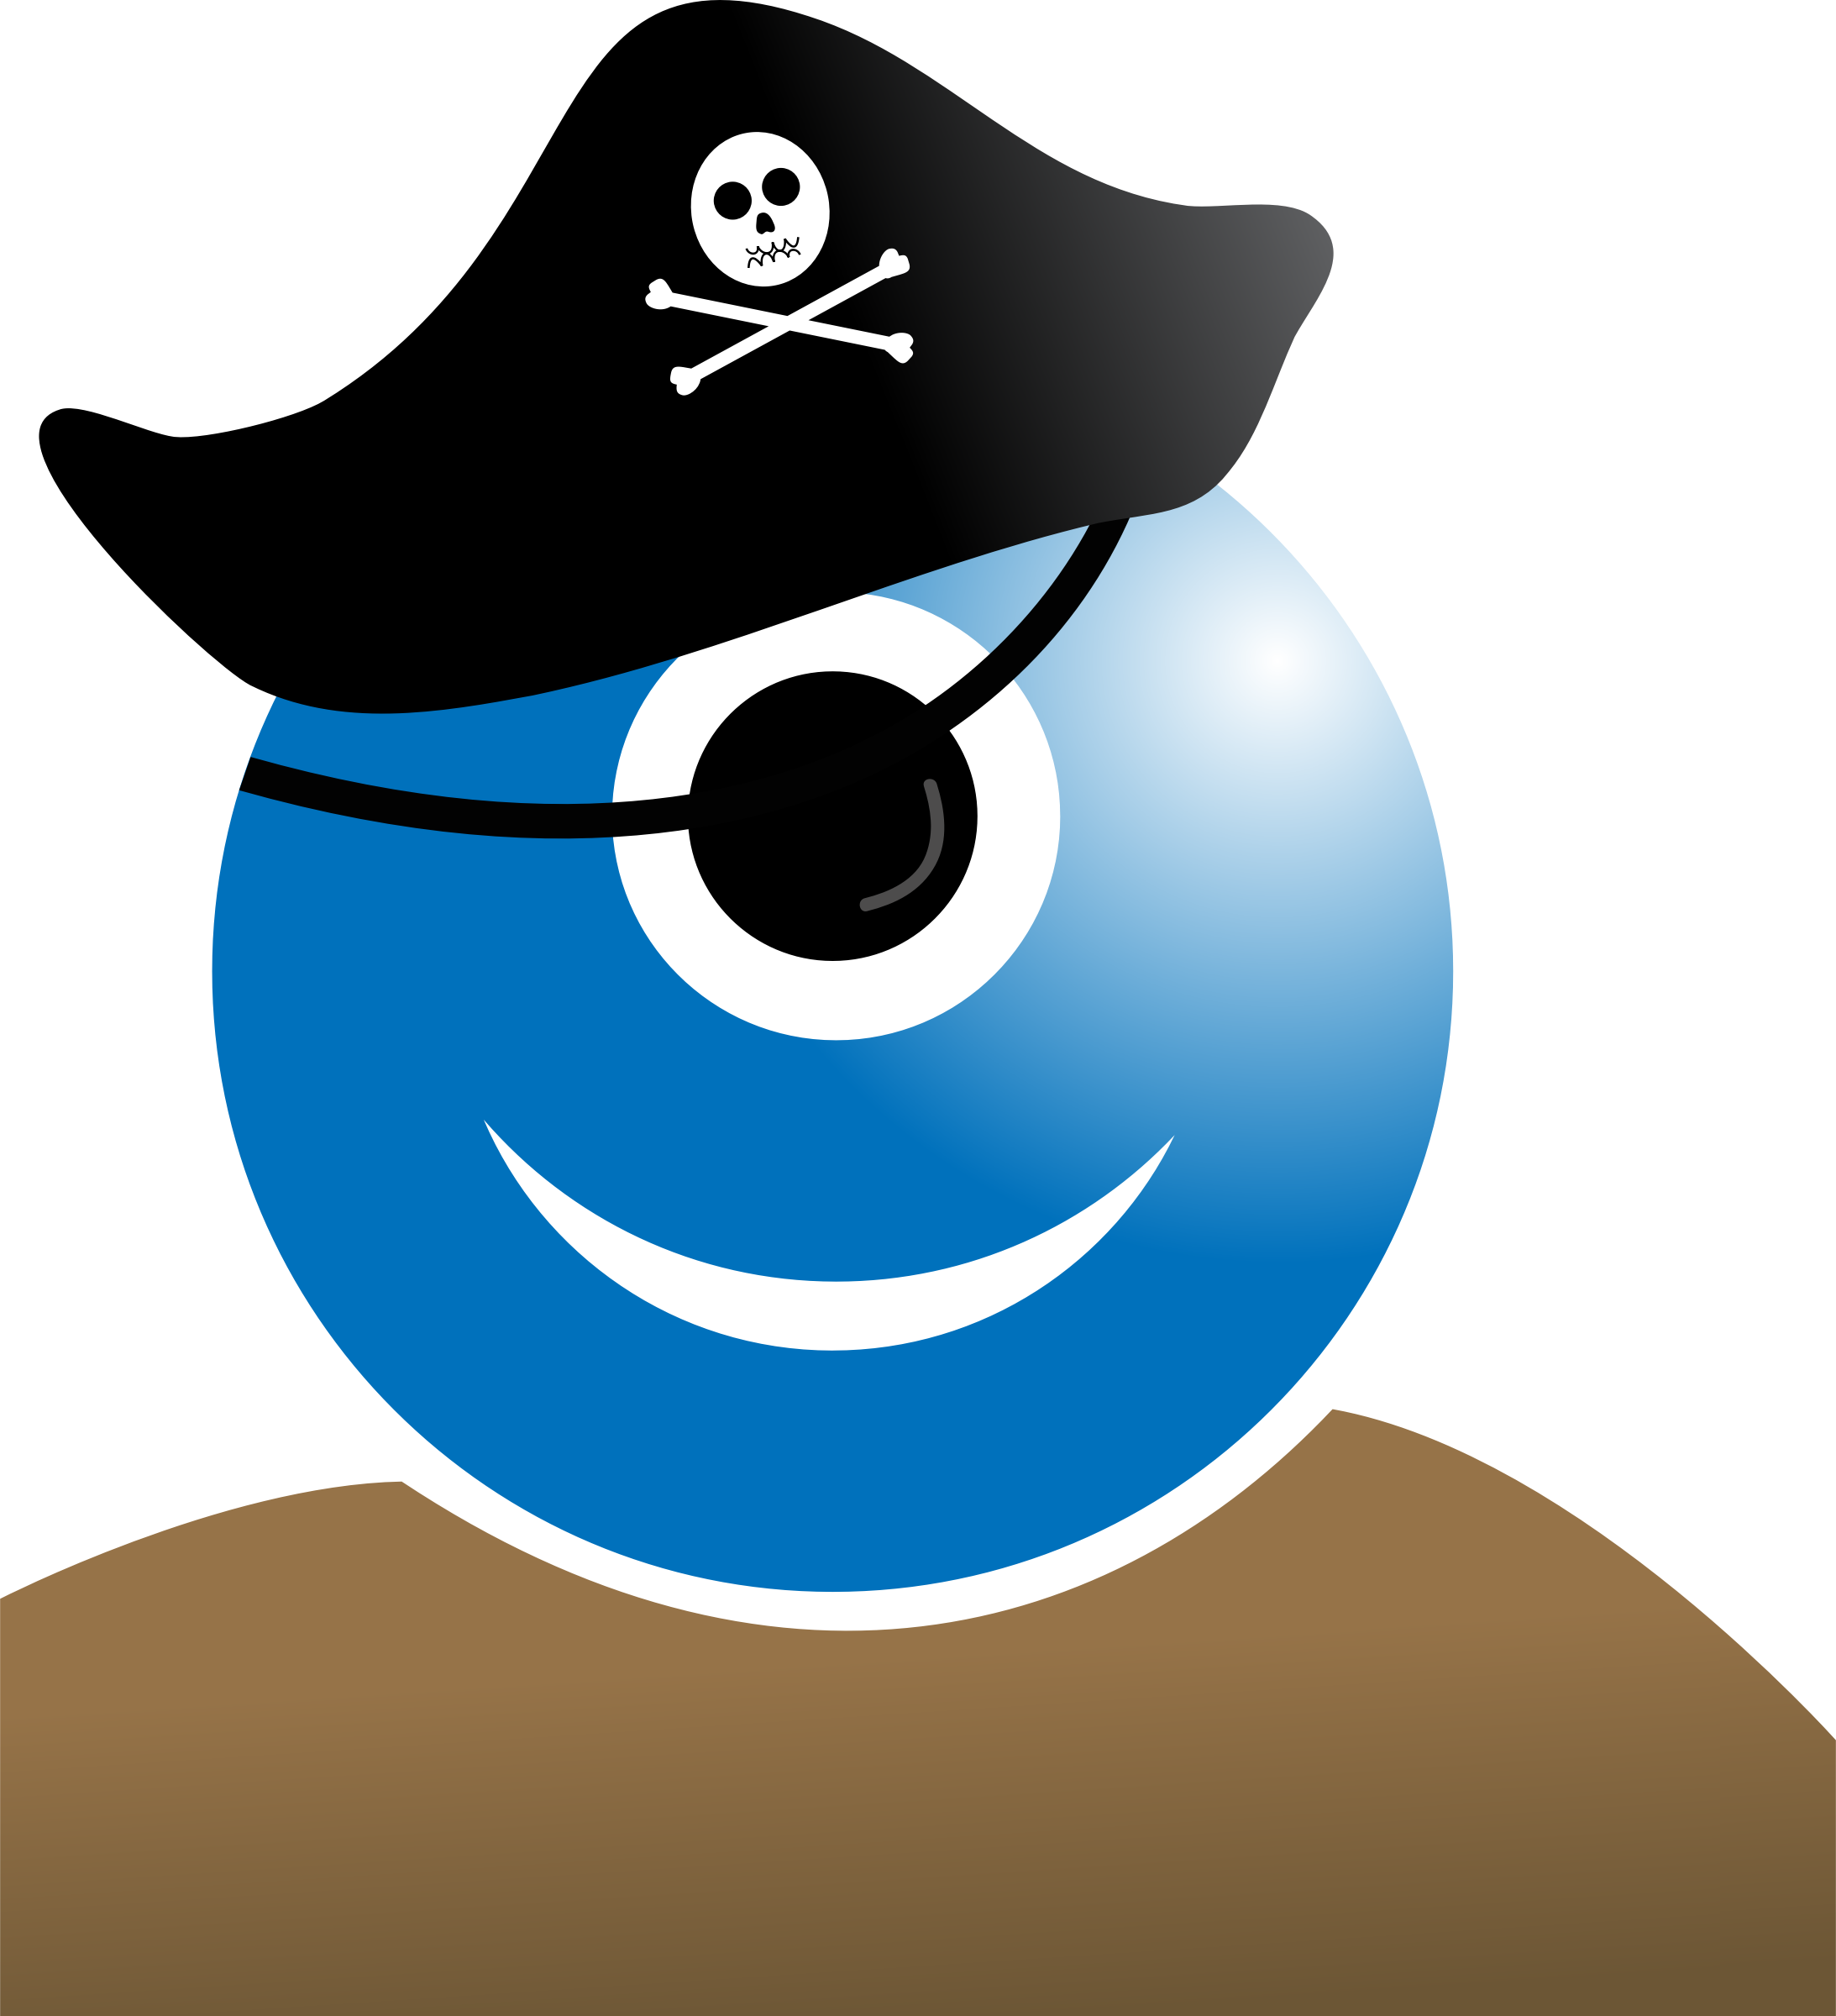 Scary clipart pirate. Alien big image png